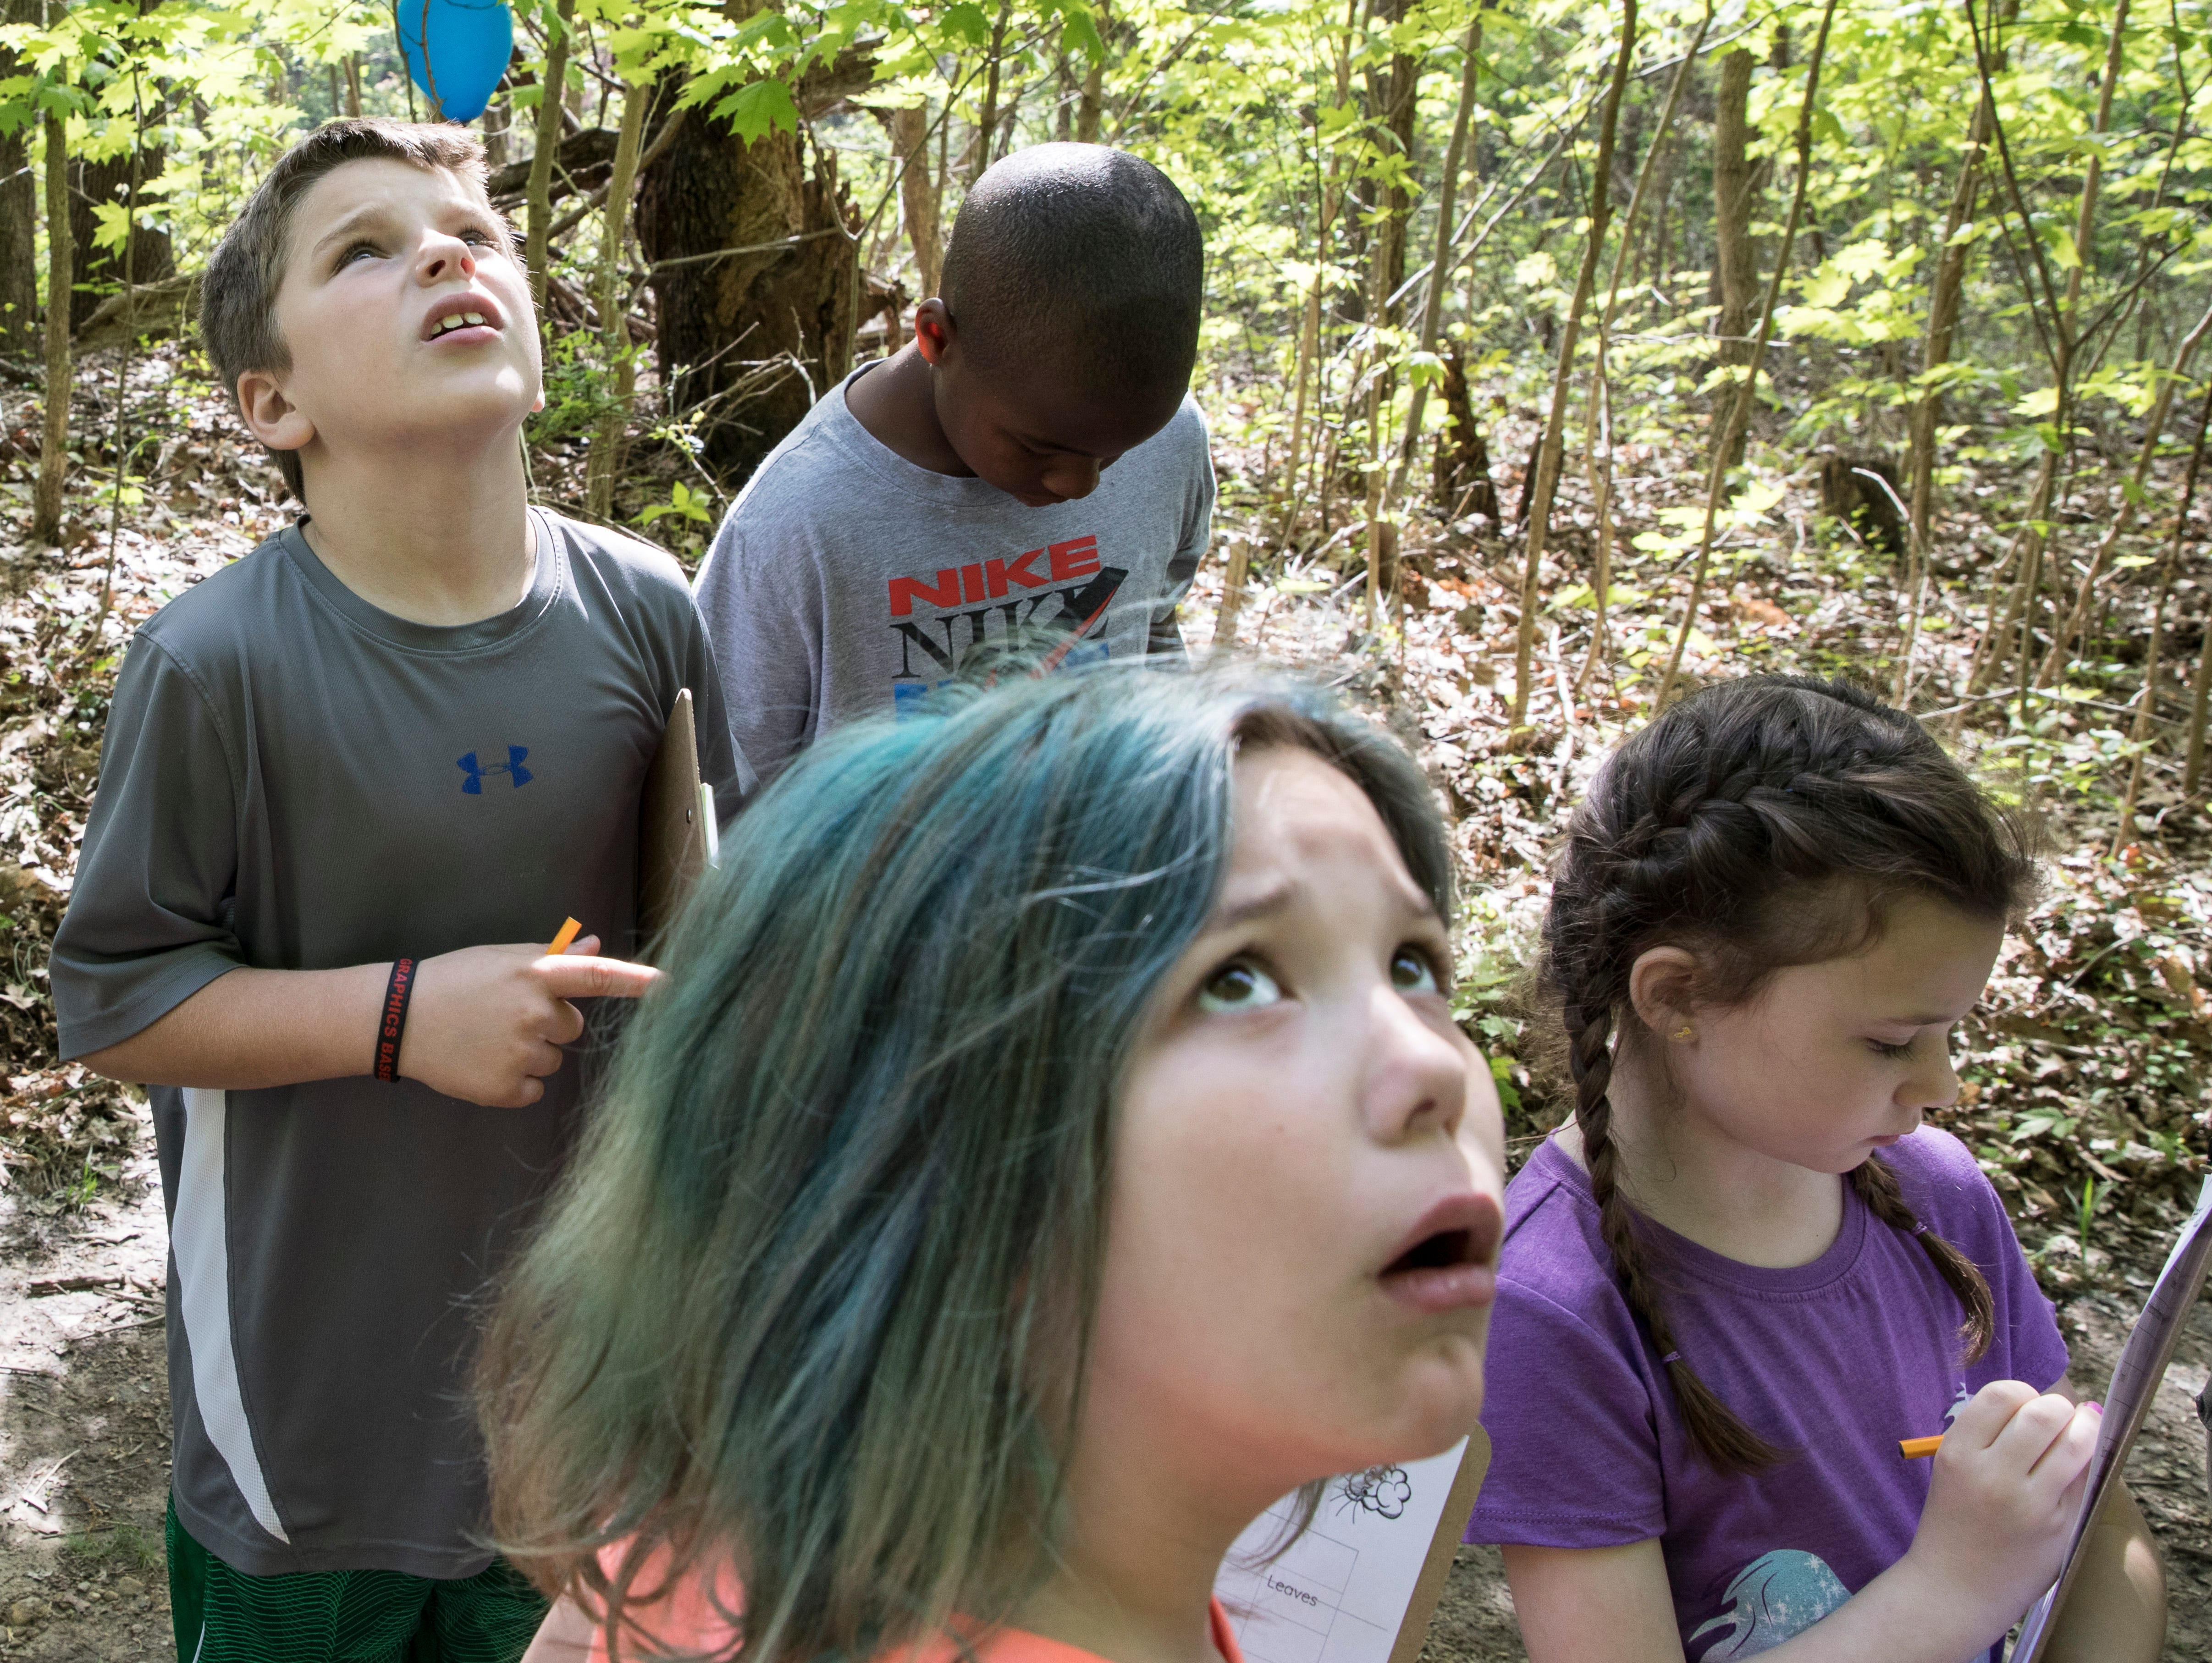 Along with his fellow classmates, Chillicothe Primary student Kaden Steele looks at his surroundings as they discover how heavily wooded areas affect the wind and its strength on the environment as part of a STEM learning project during a school outing at Buzzards Roost Nature Preserve on Wednesday, May 1, 2019.